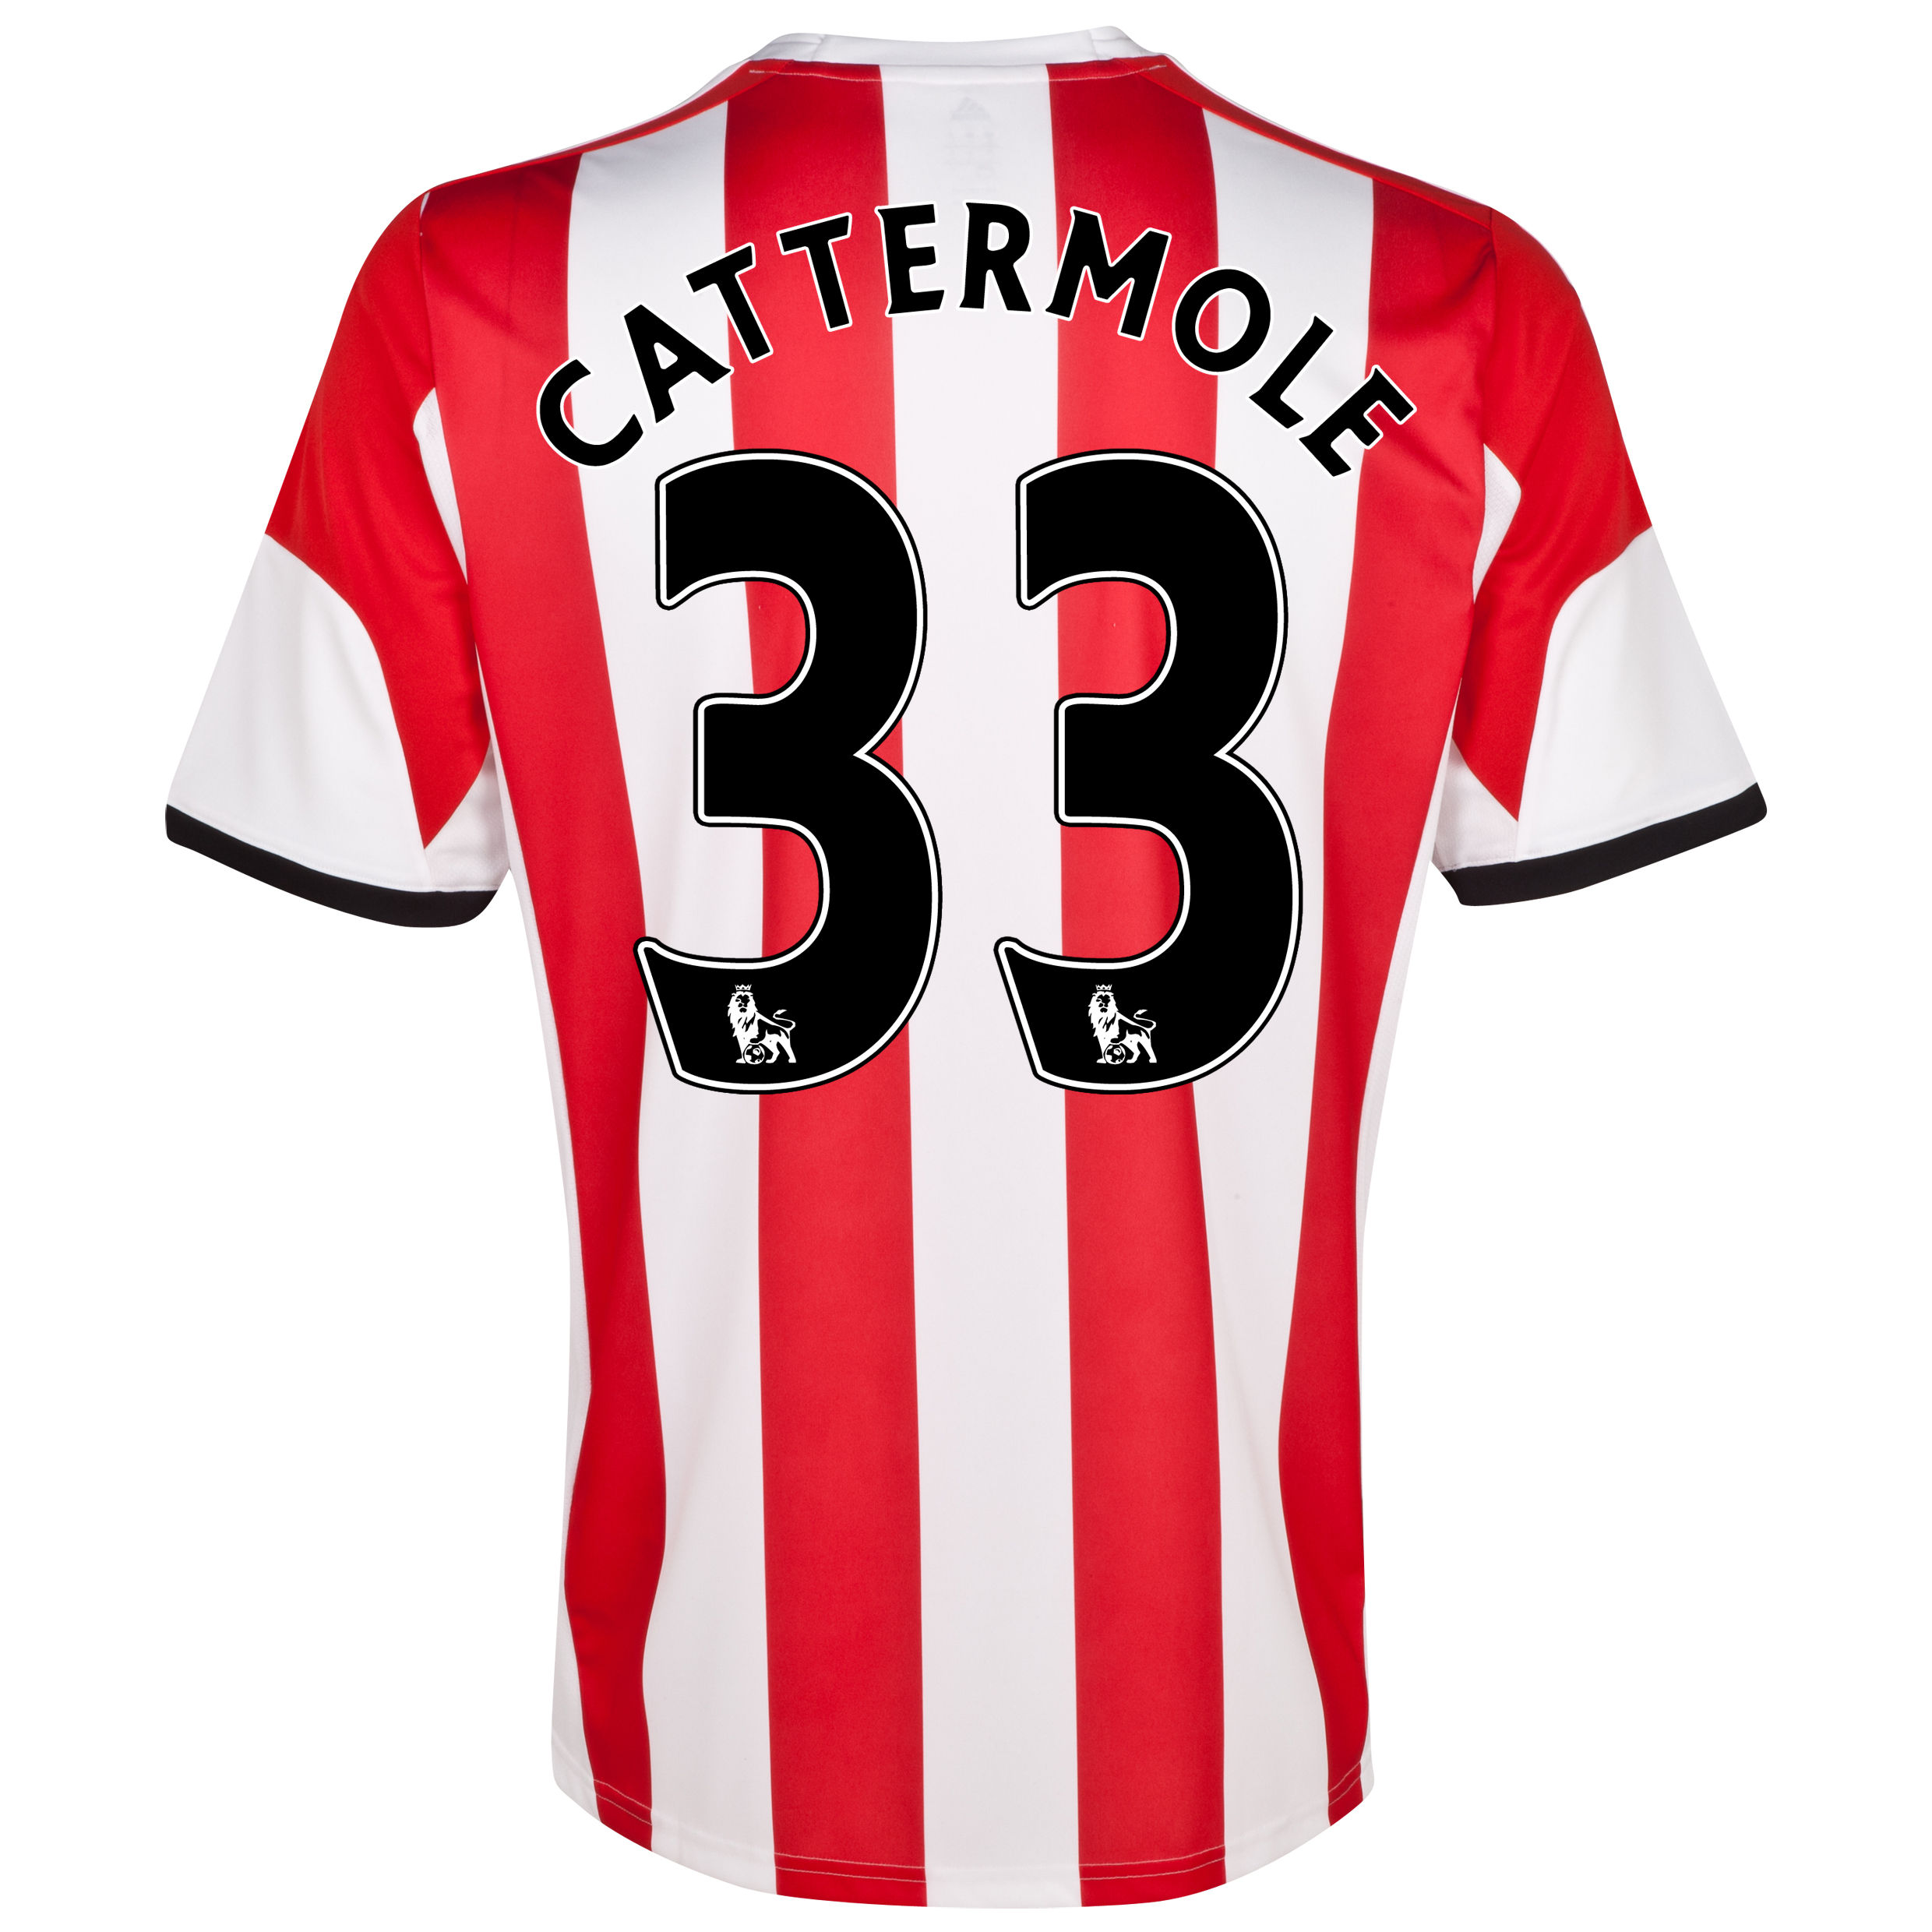 Sunderland Home Shirt 2013/14  with Cattermole 33 printing